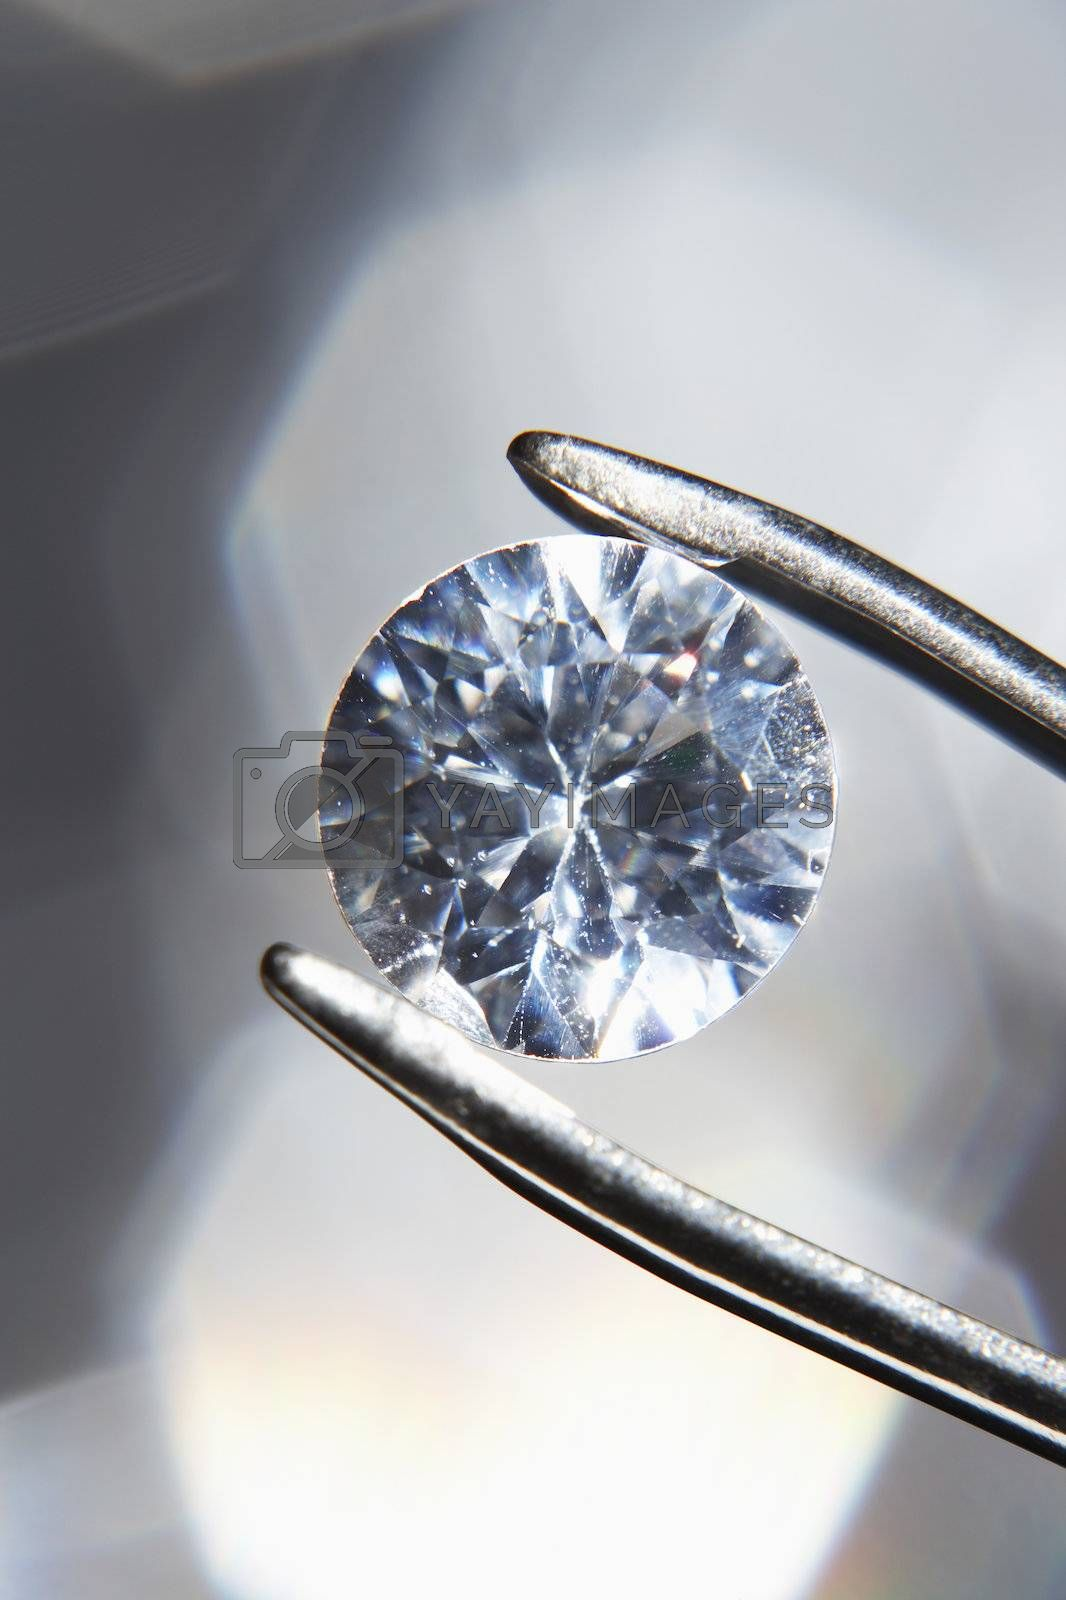 Diamond held by tweezers close-up by moodboard